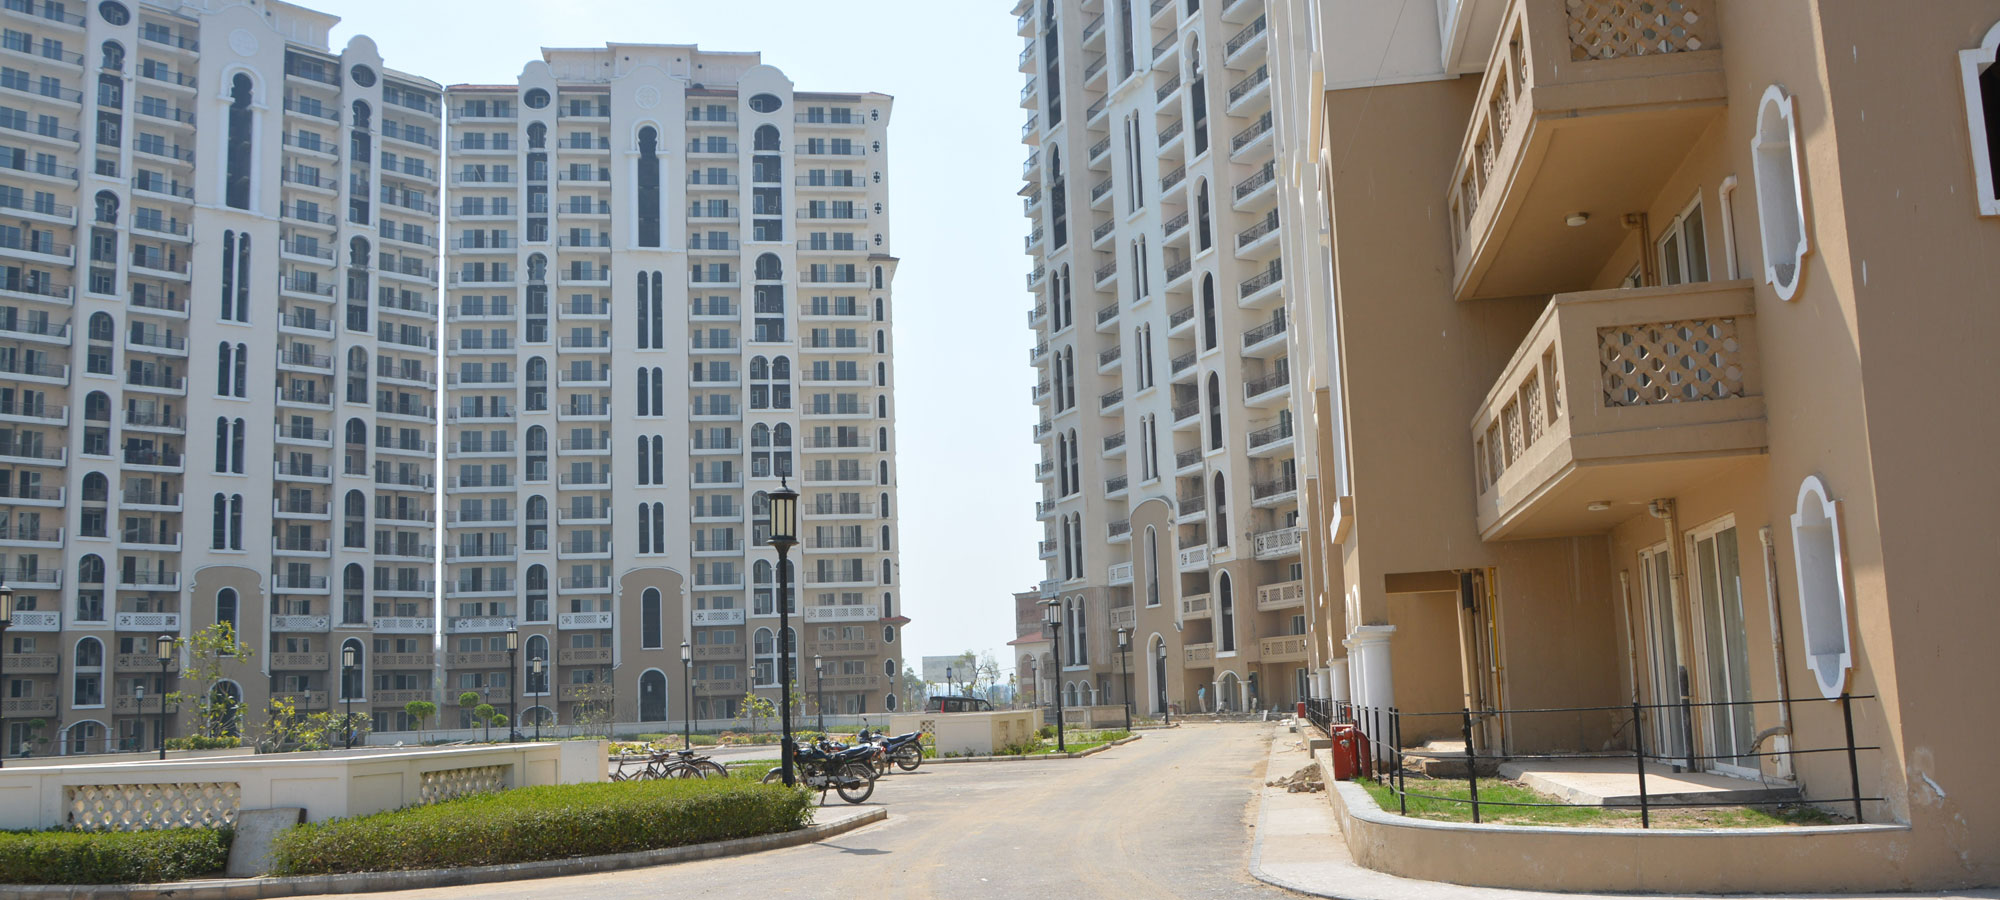 Dlf New Town Height Luxury Apartments In Gurgaon 9560076462